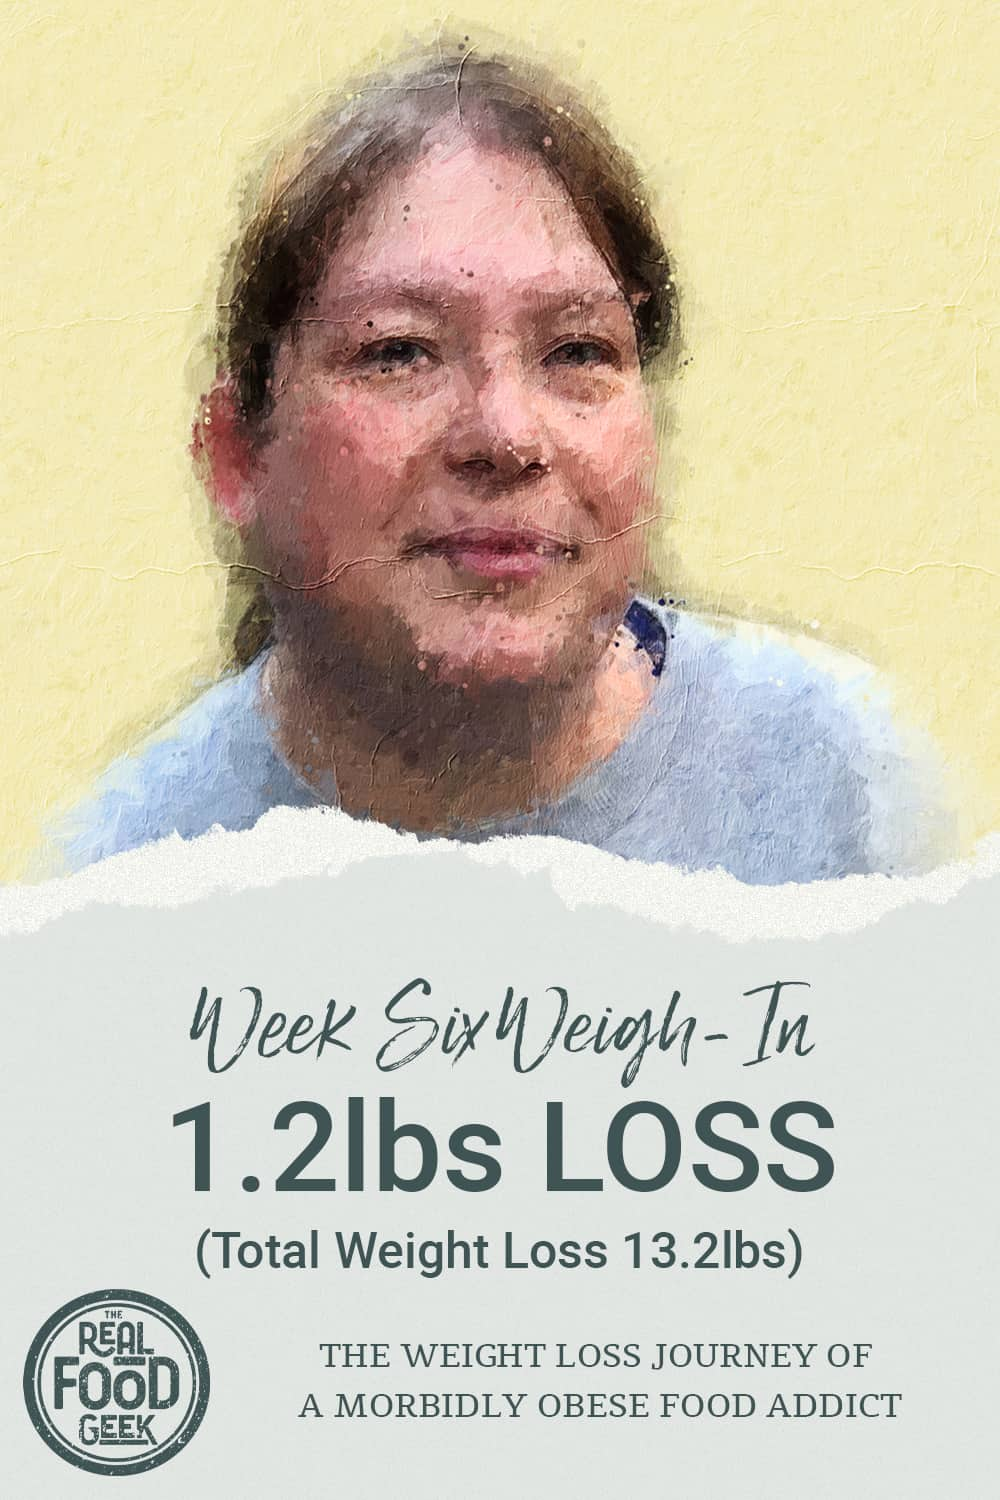 weight loss stats from week six weigh-in